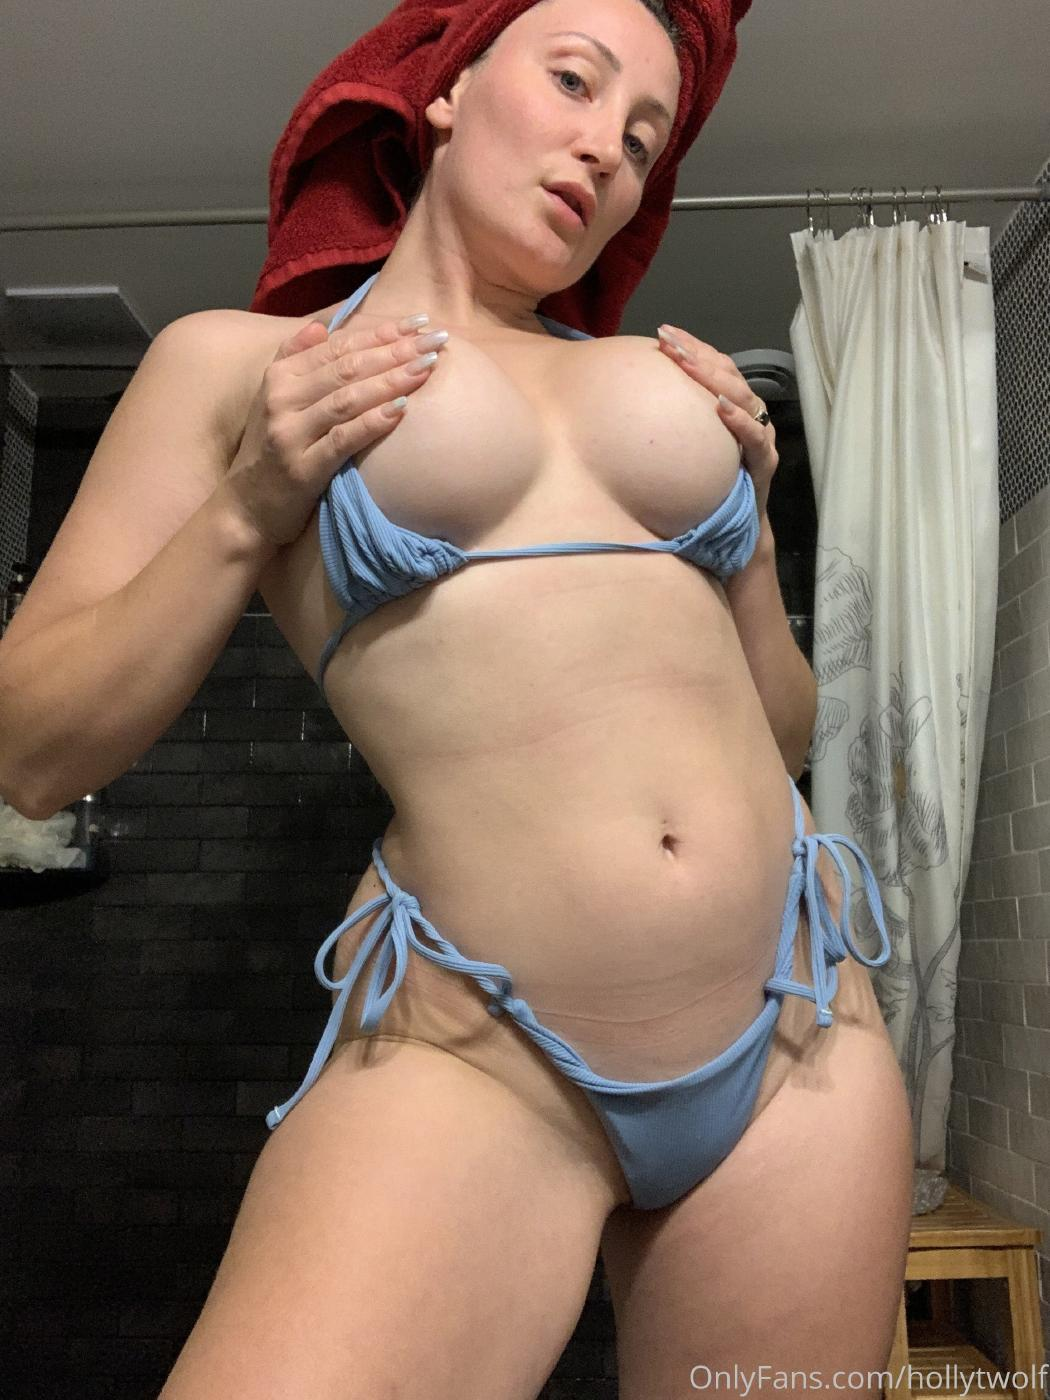 Holly Wolf Nude Onlyfans Content Leaked 0020